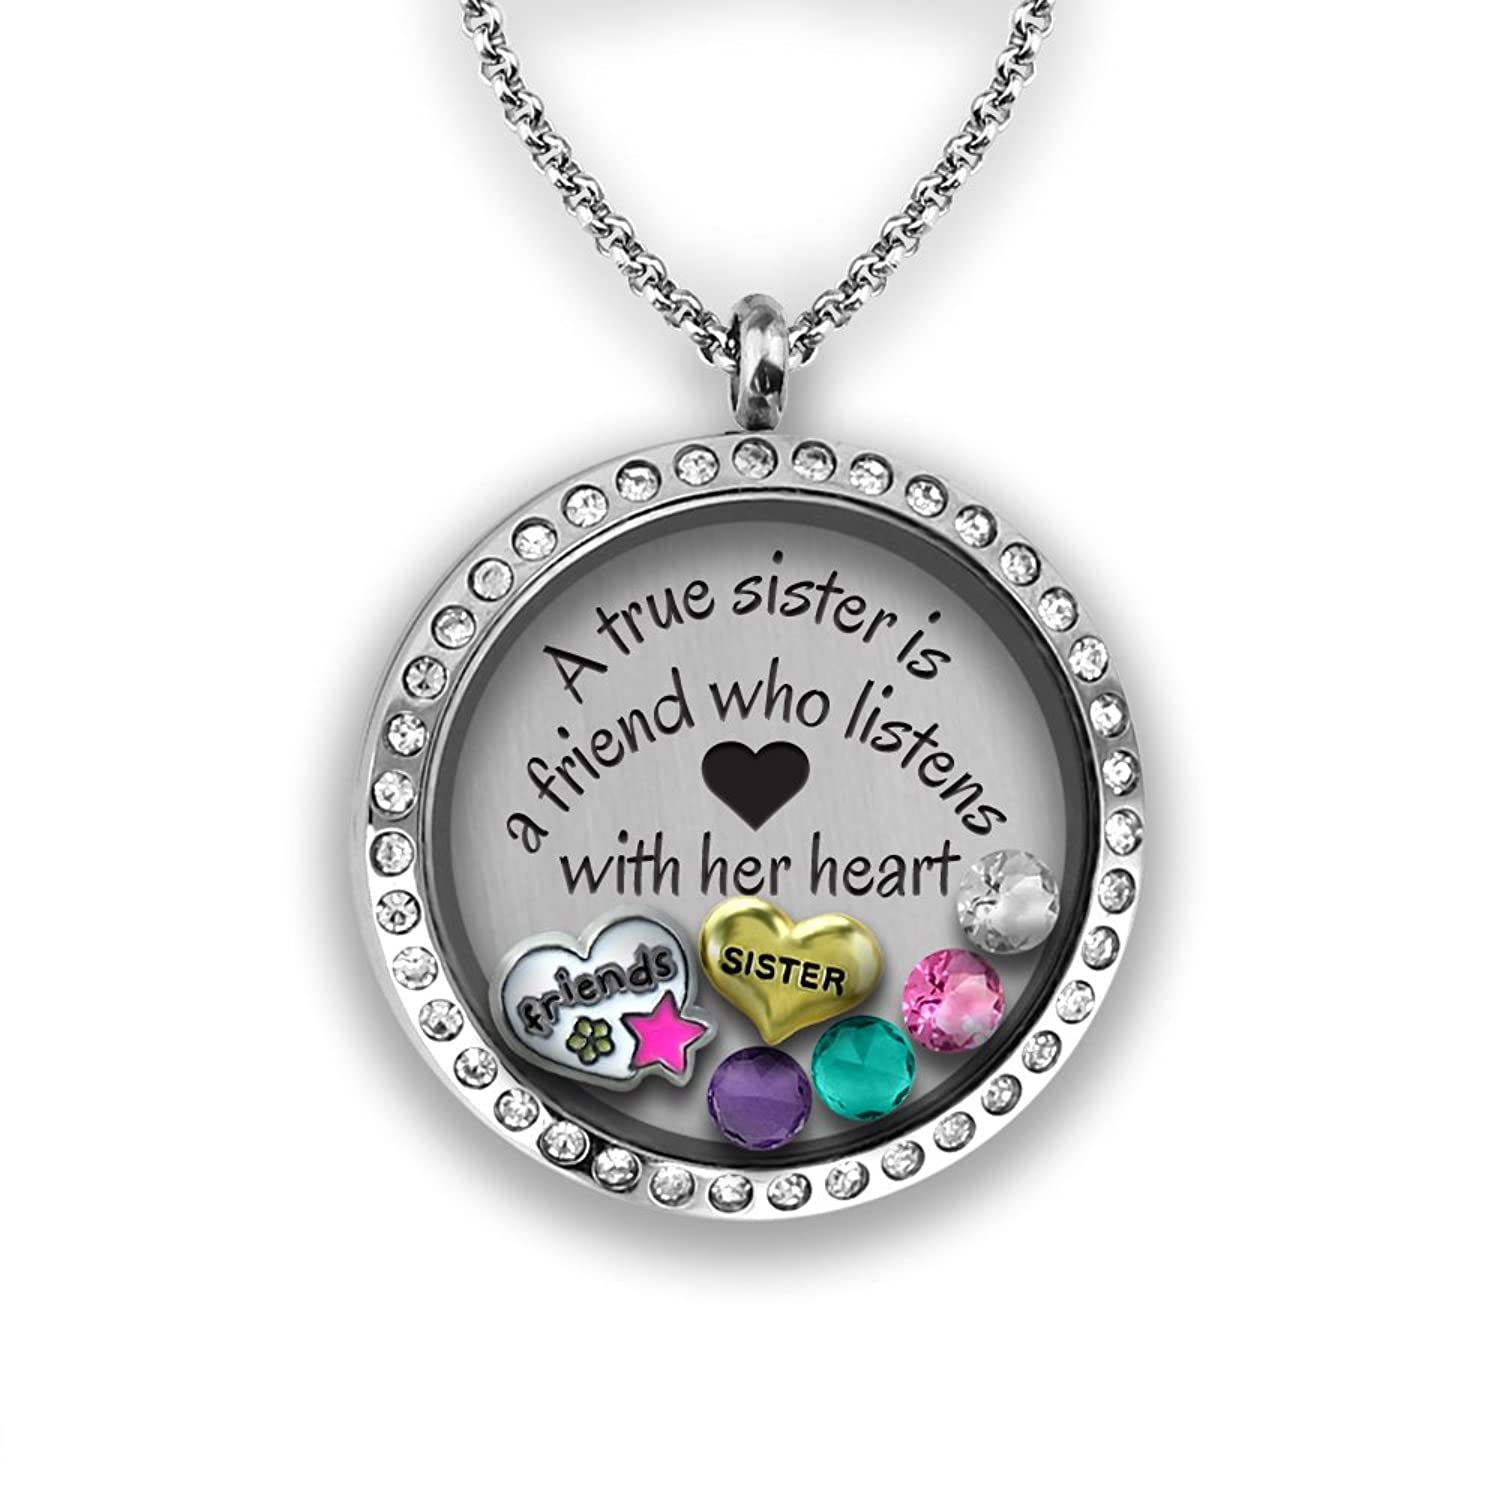 pbx silver heart grandma split jewelry uec granddaughter bling necklace set grandmother lockets heartpendant